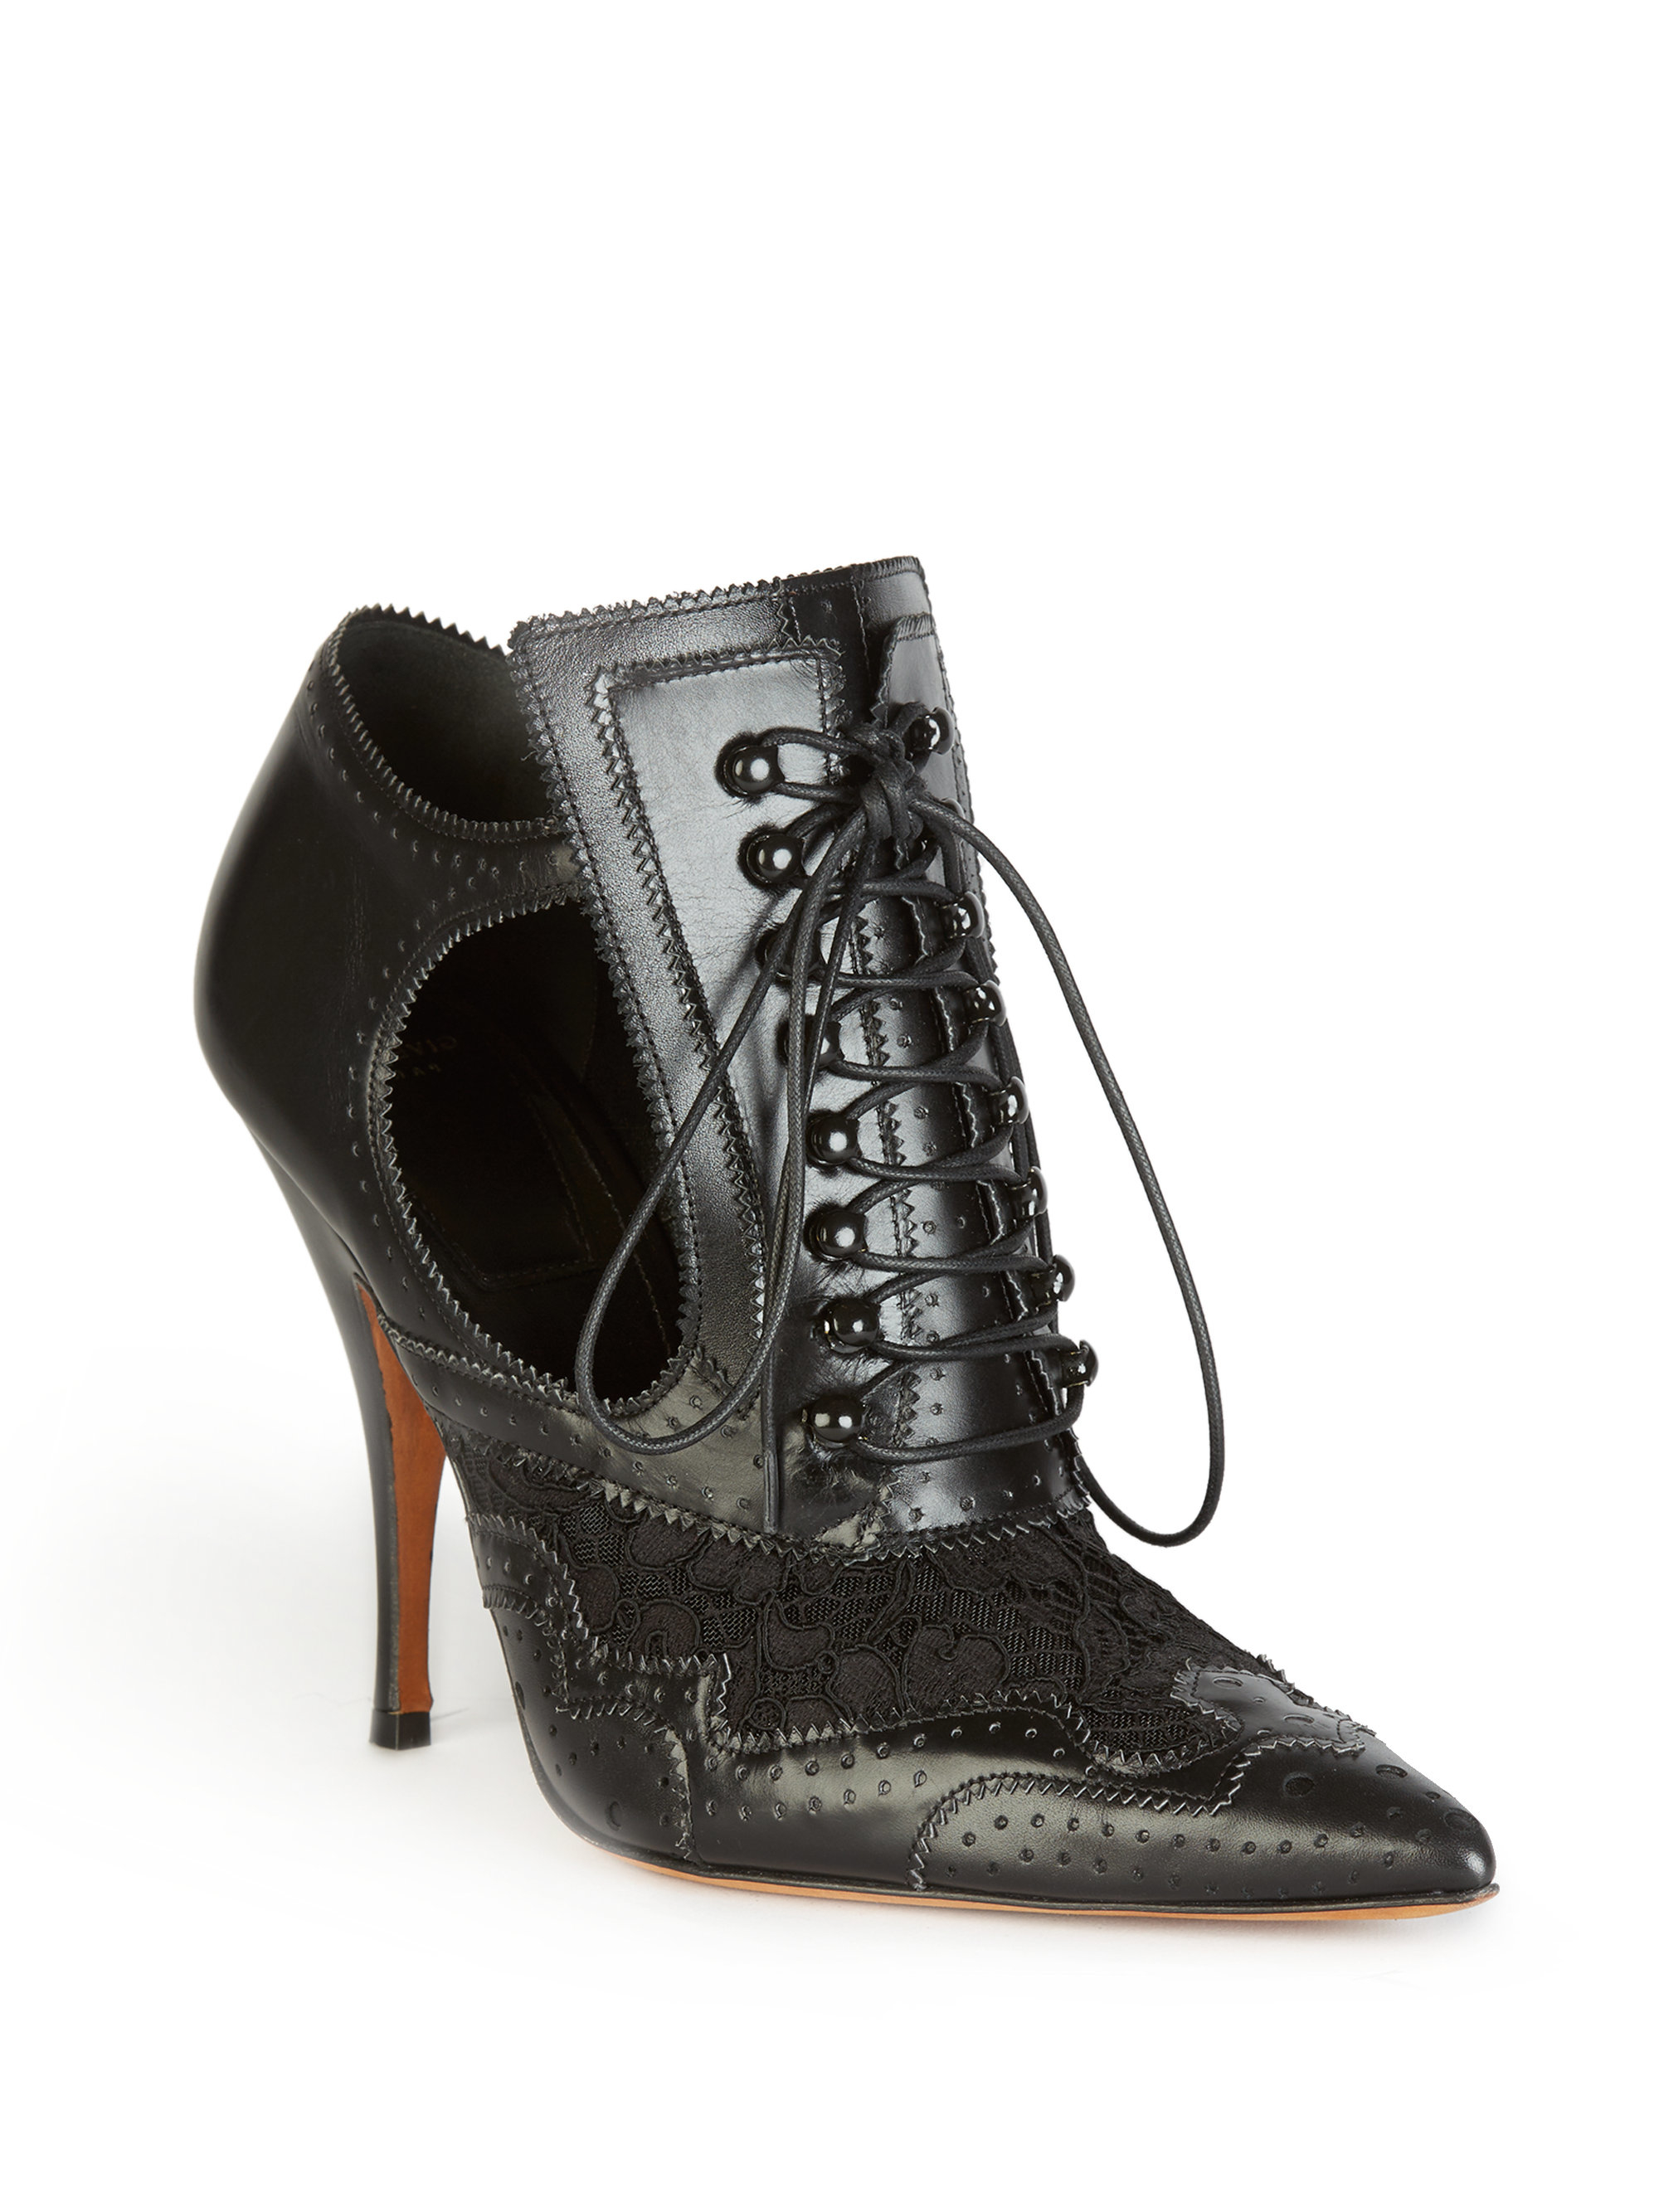 be1c1d255 Givenchy Leather & Lace Lace-up Cutout Booties in Black - Lyst